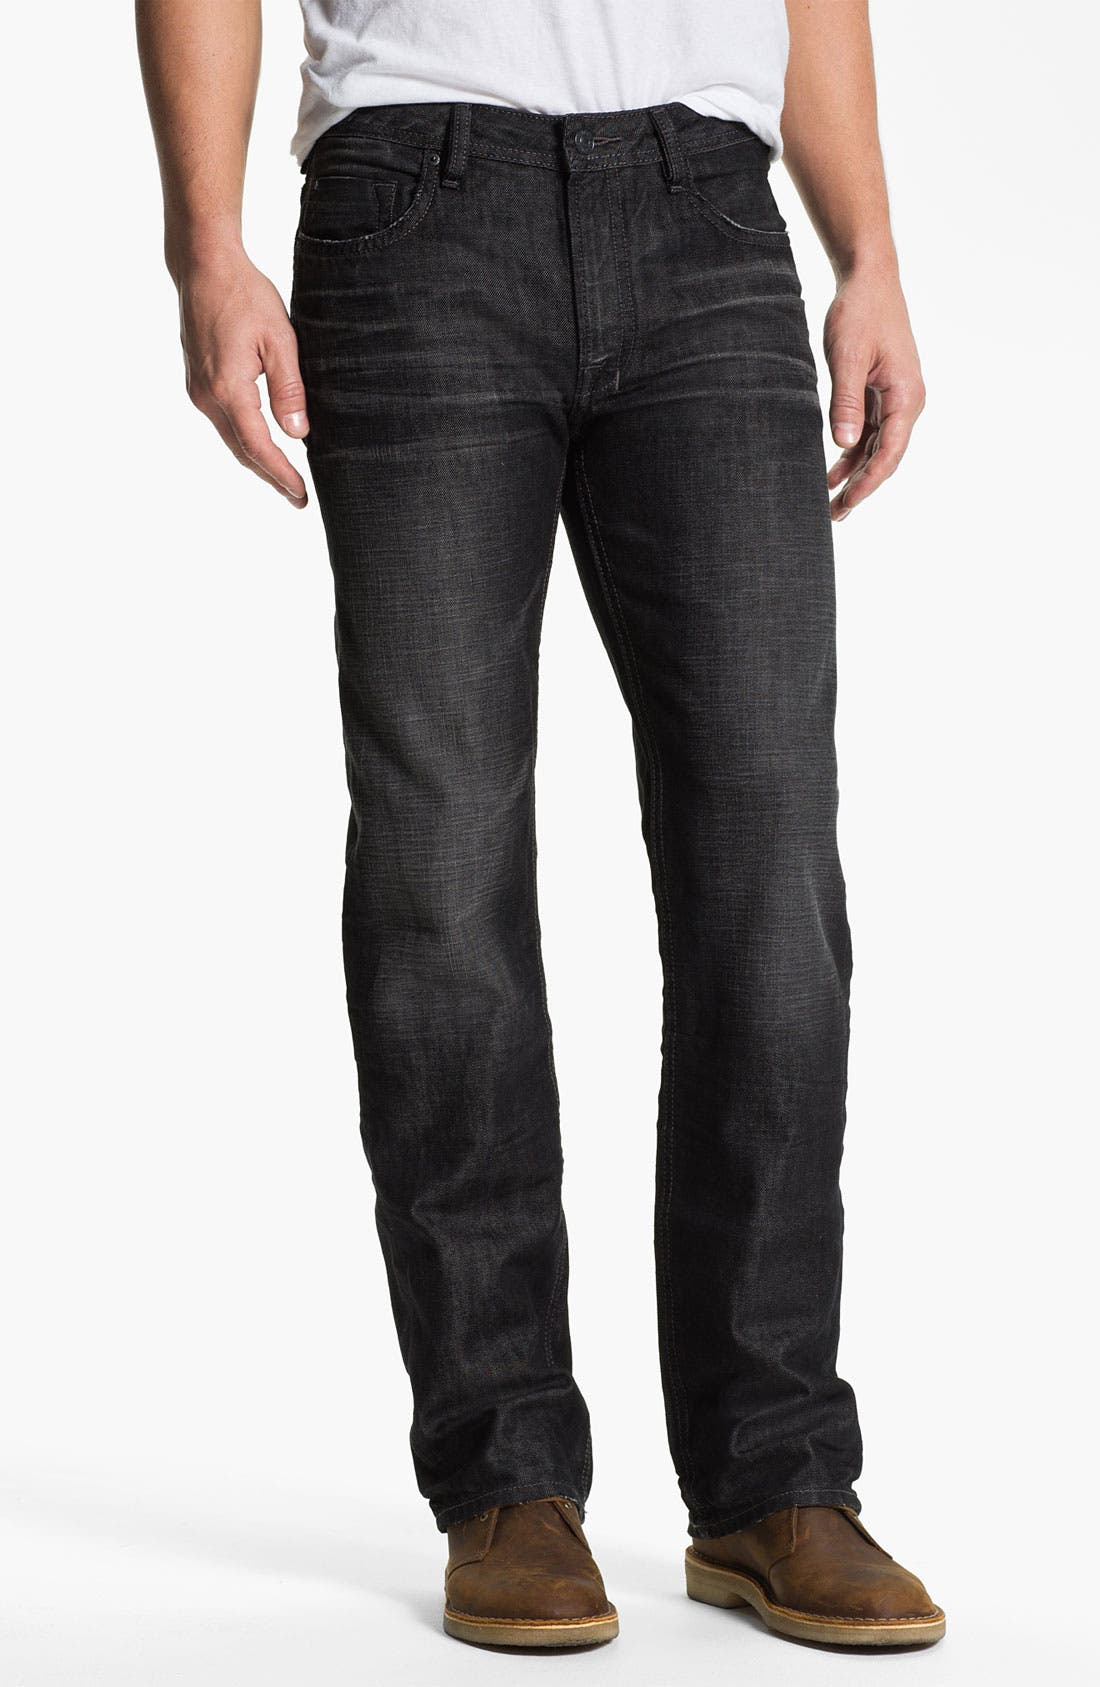 Alternate Image 1 Selected - Buffalo Jeans 'Driven' Straight Leg Jeans (Dark/Washed)